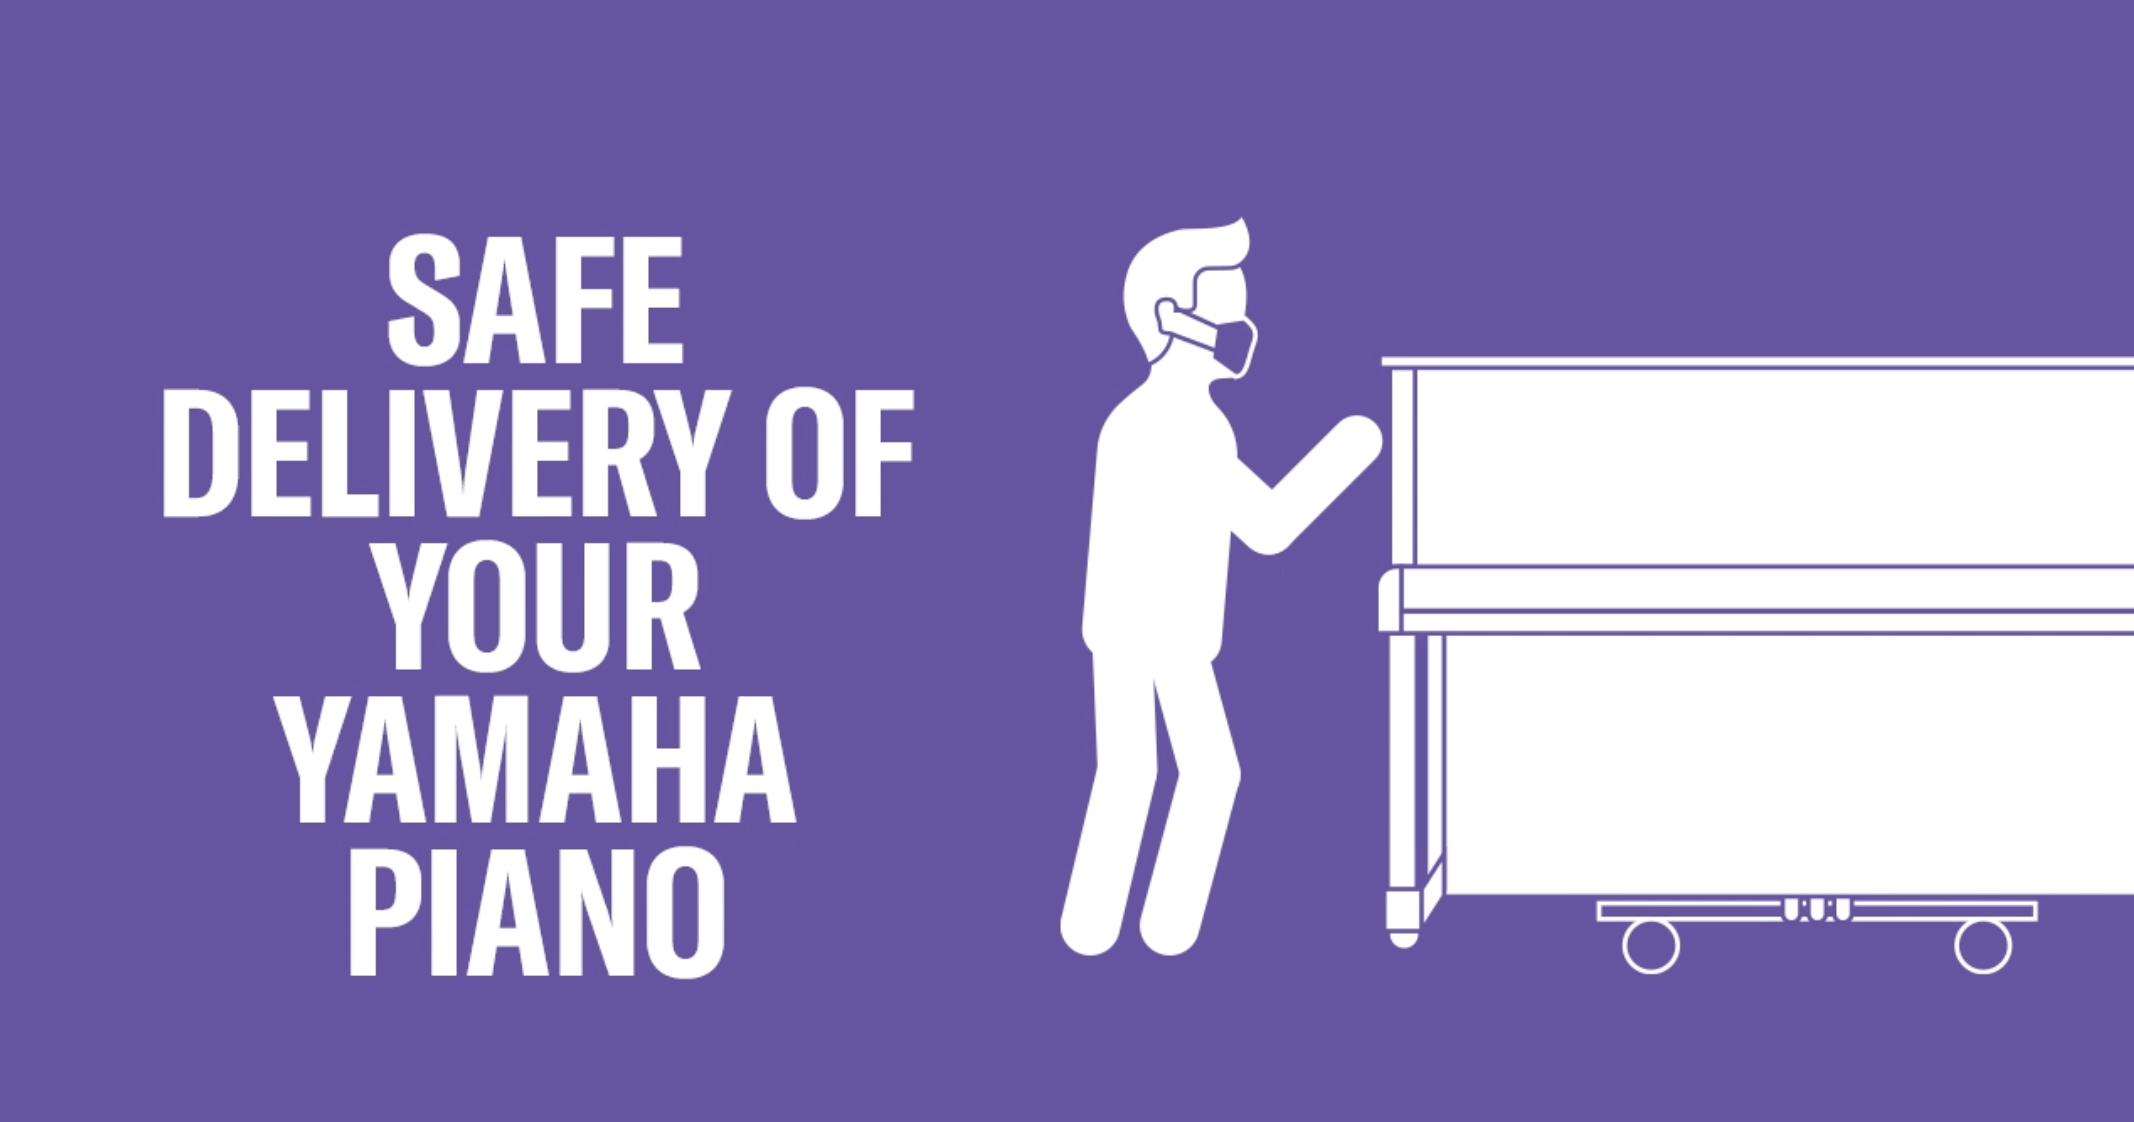 Safe delivery of your Yamaha piano